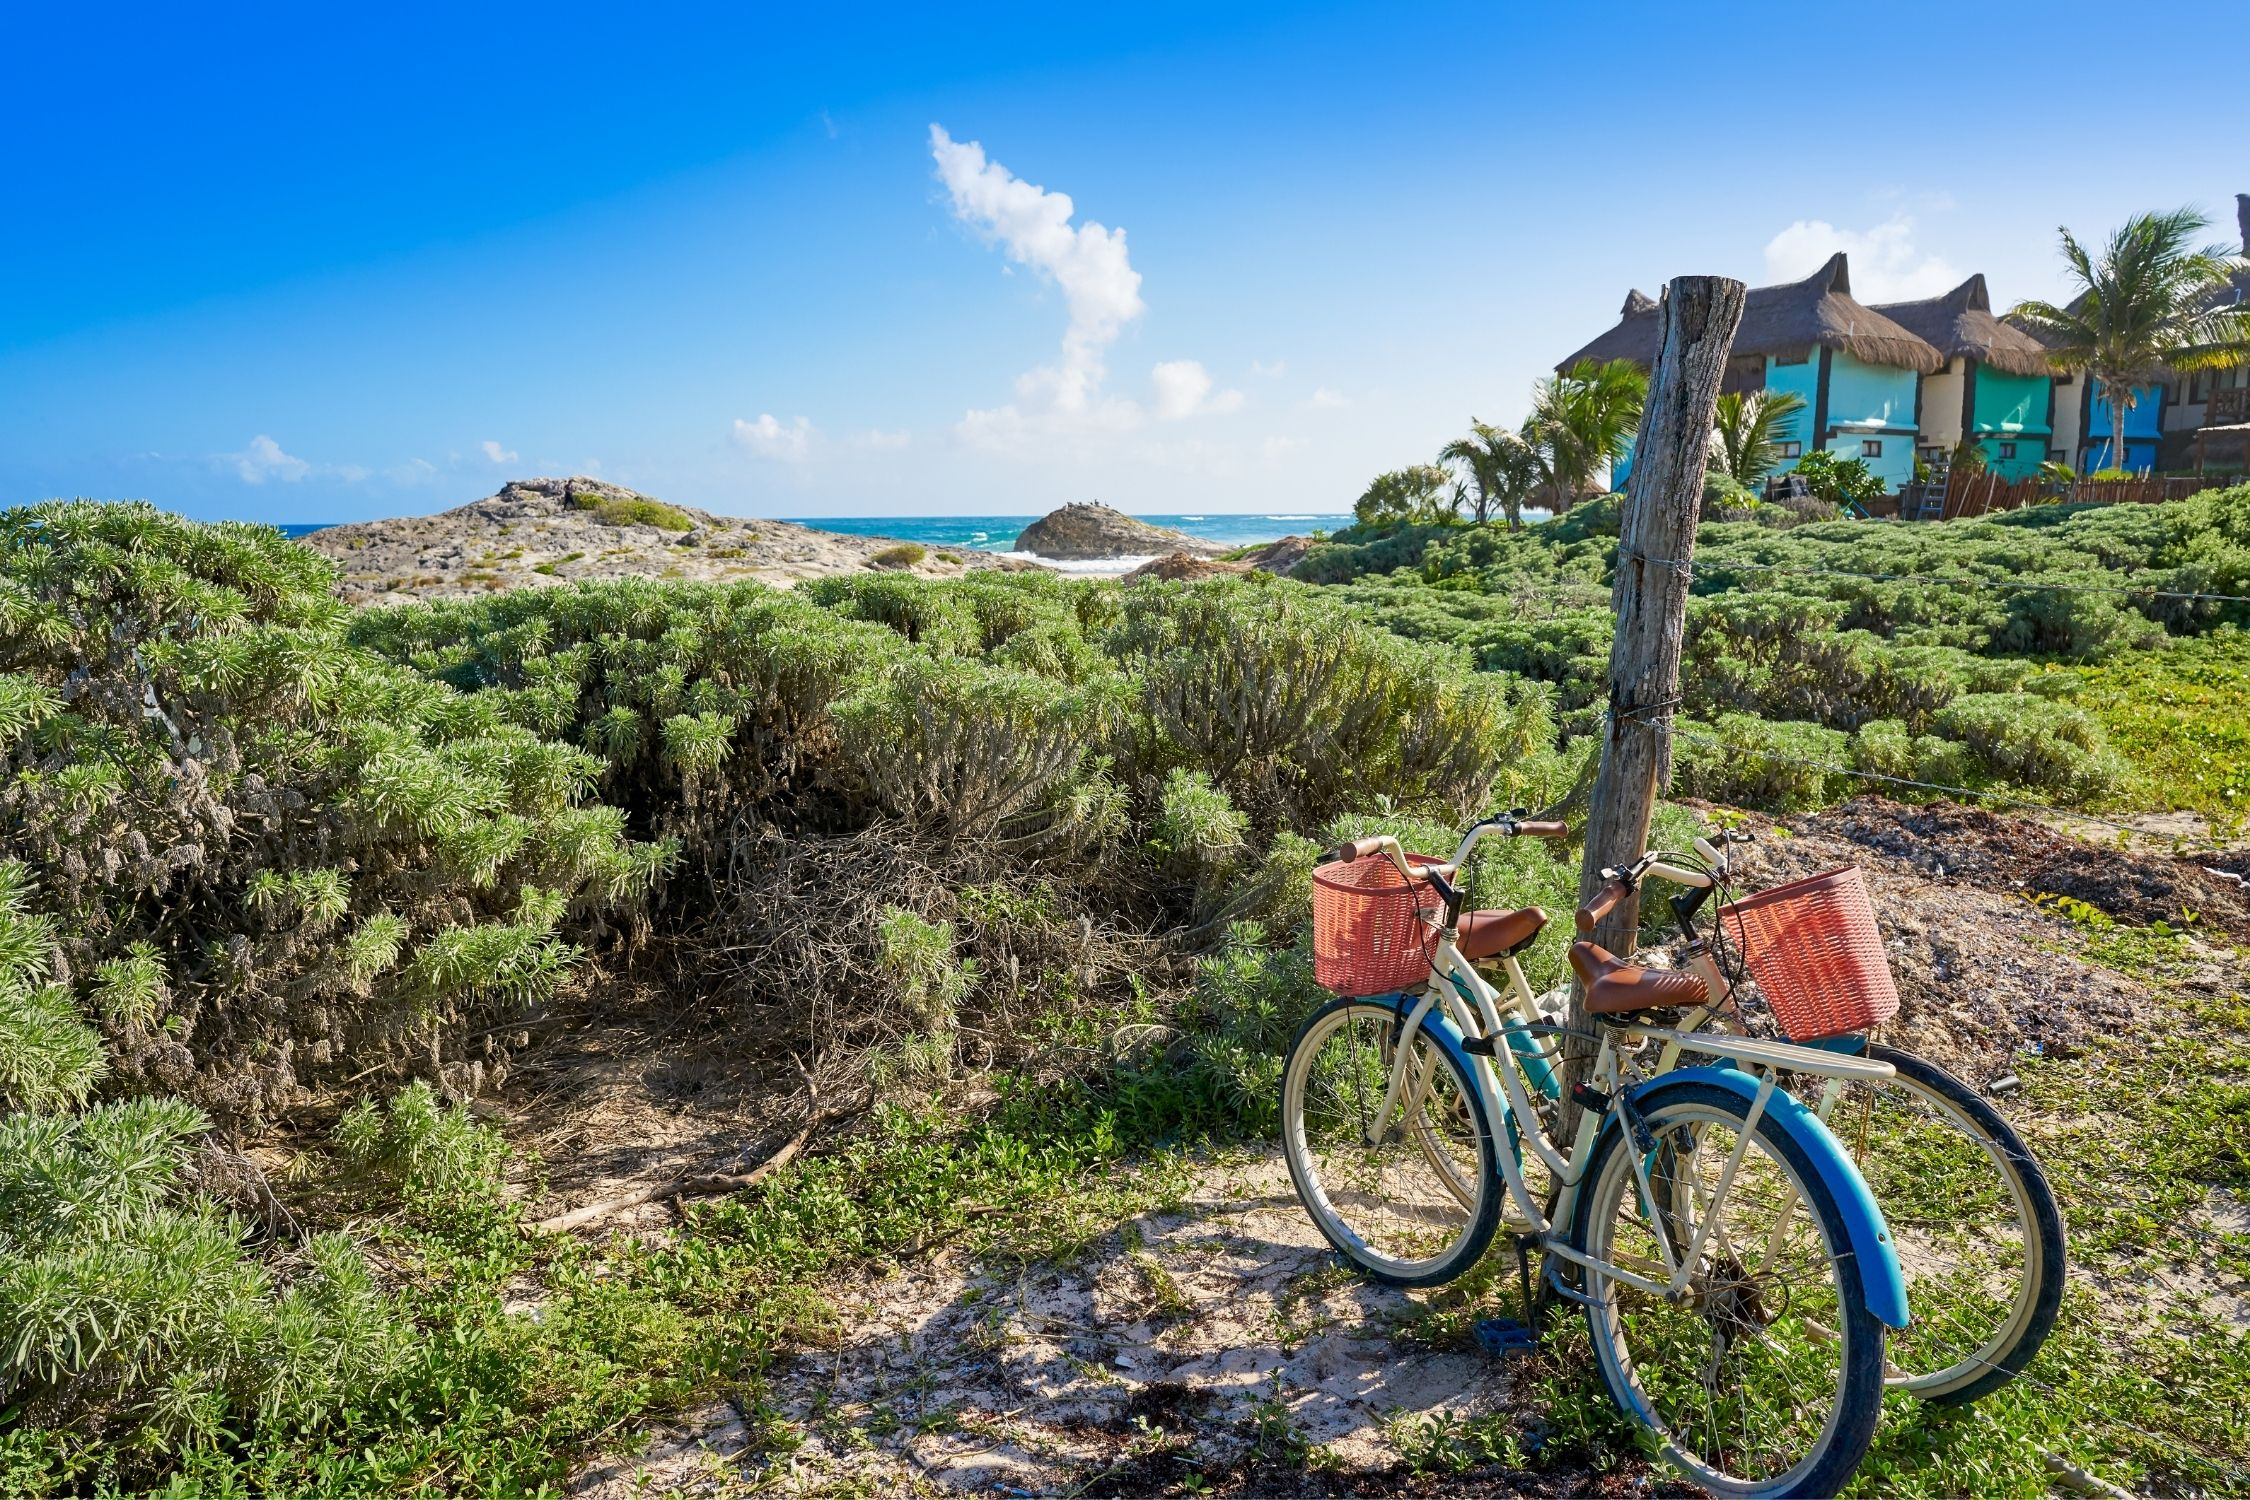 The weather in Tulum is great for biking to the beach